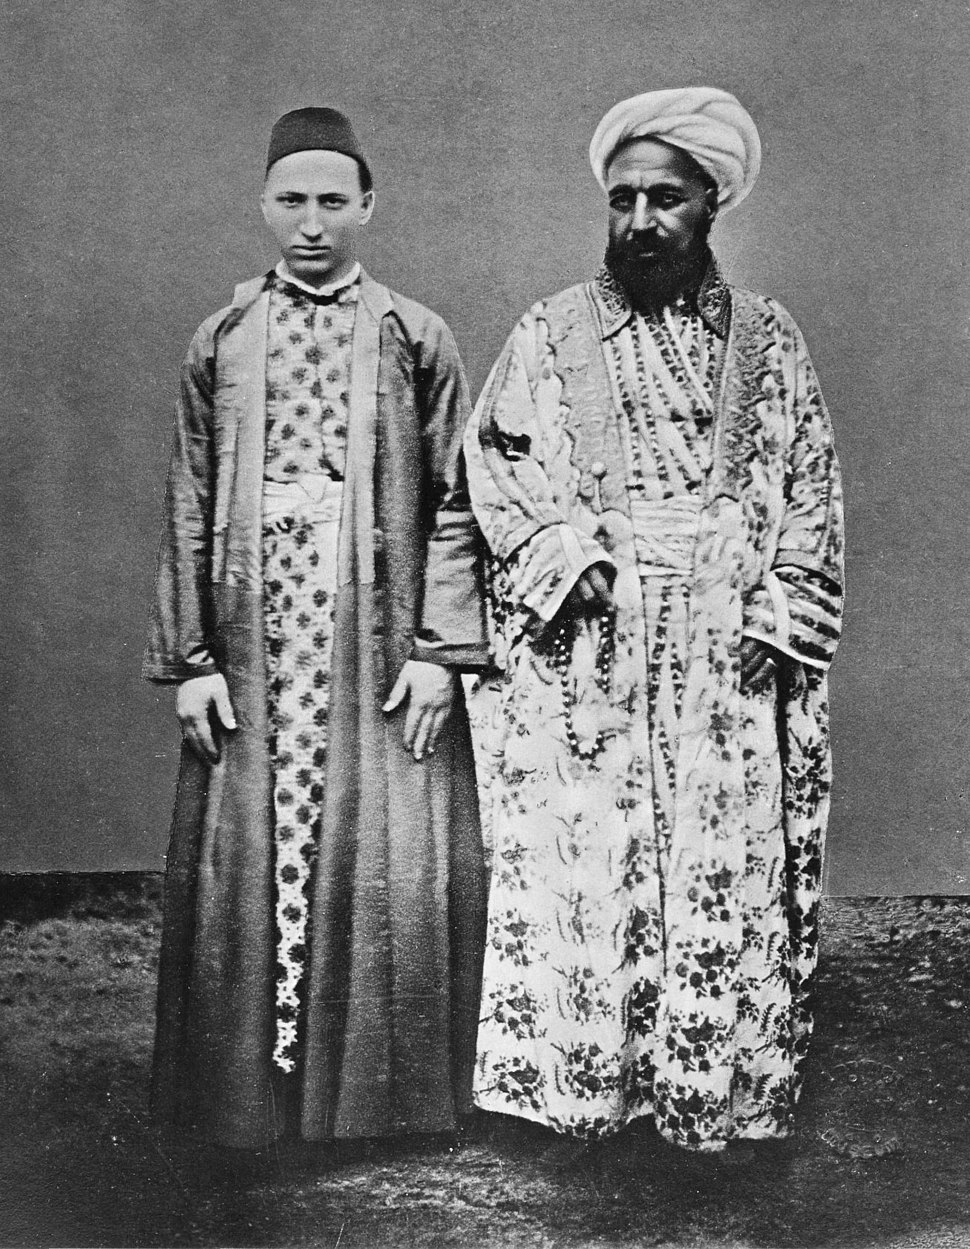 Meccan merchant and his Circassian slave